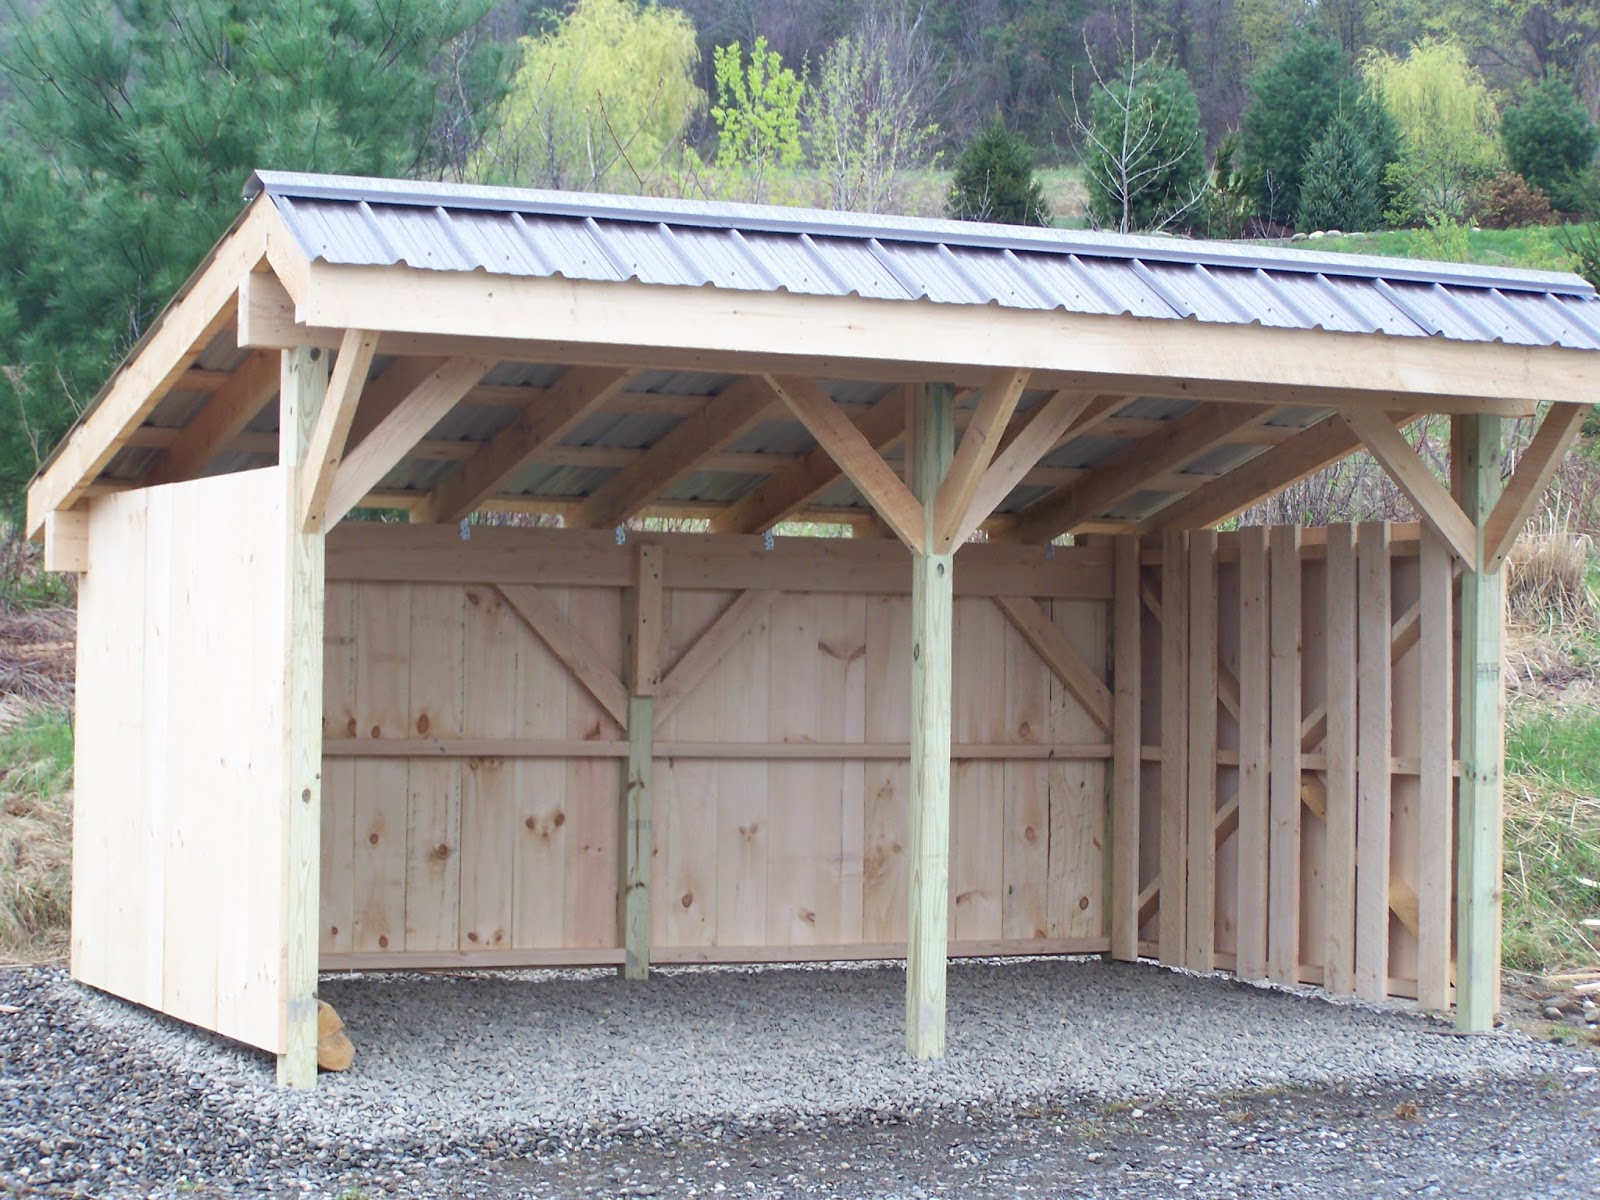 Jacob leach construction 802 275 8133 renovations new for Wood shed plans